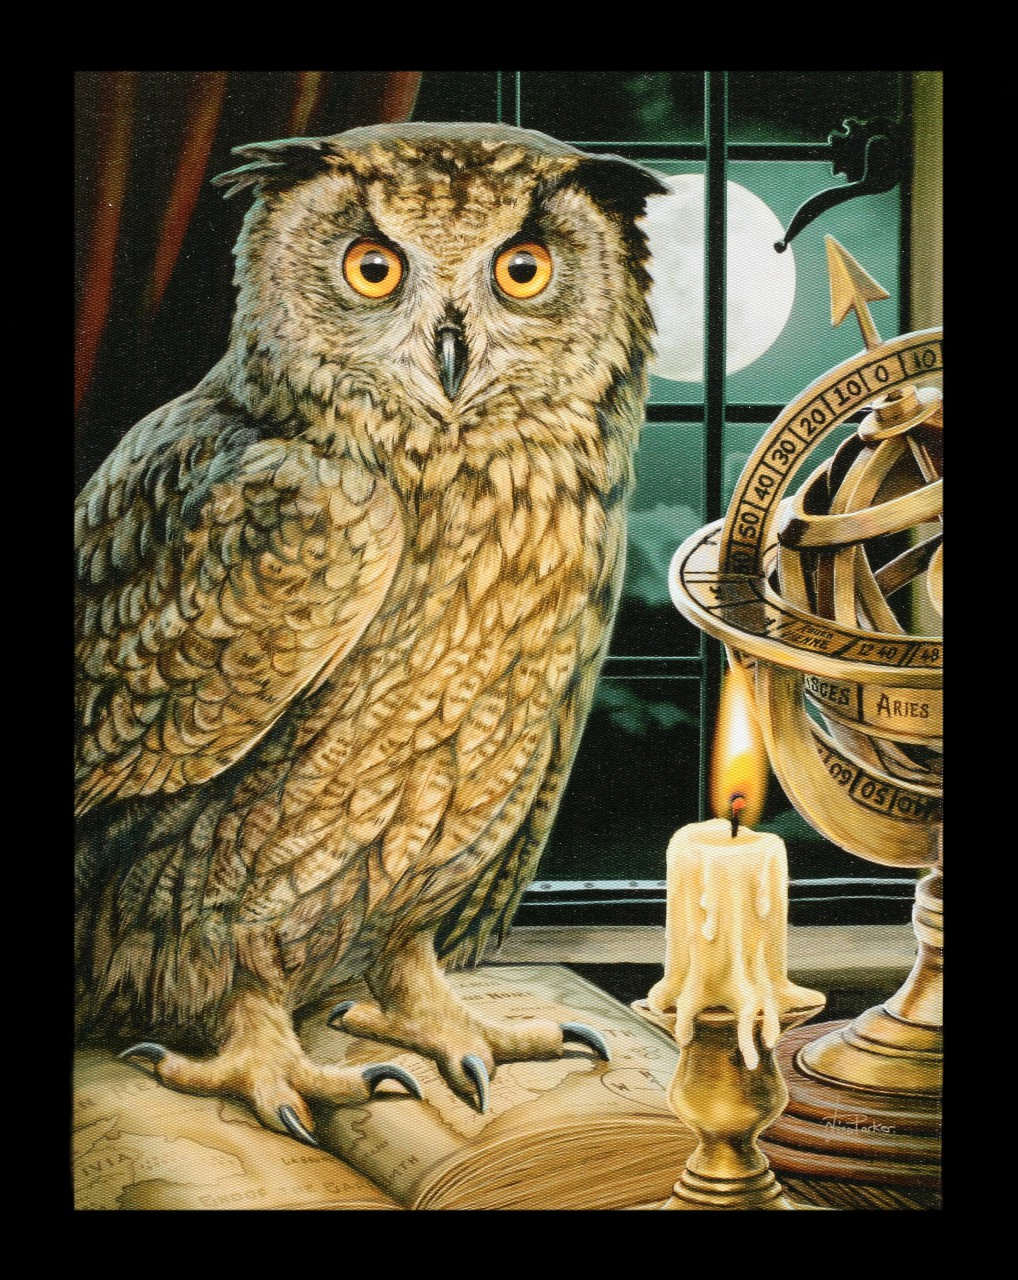 Small Canvas with Owl - The Astrologer